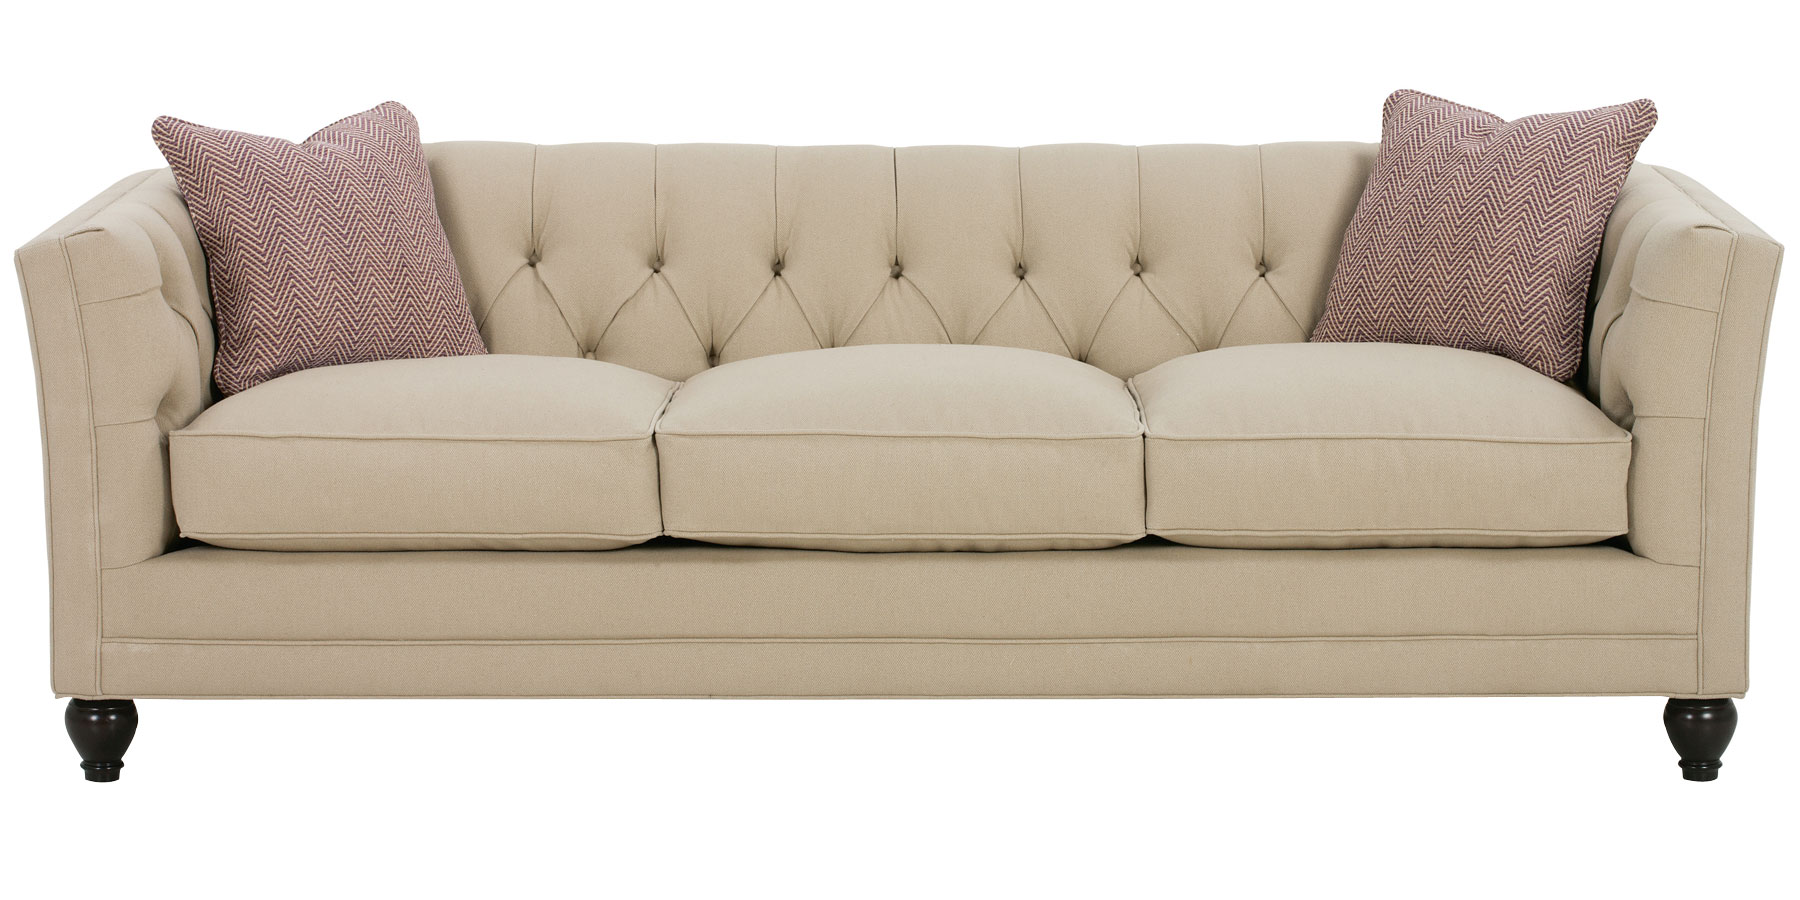 Tufted Back Fabric Sofa Collection Club Furniture : isadore designer style tufted back fabric sofa group 13 from www.clubfurniture.com size 1800 x 900 jpeg 214kB